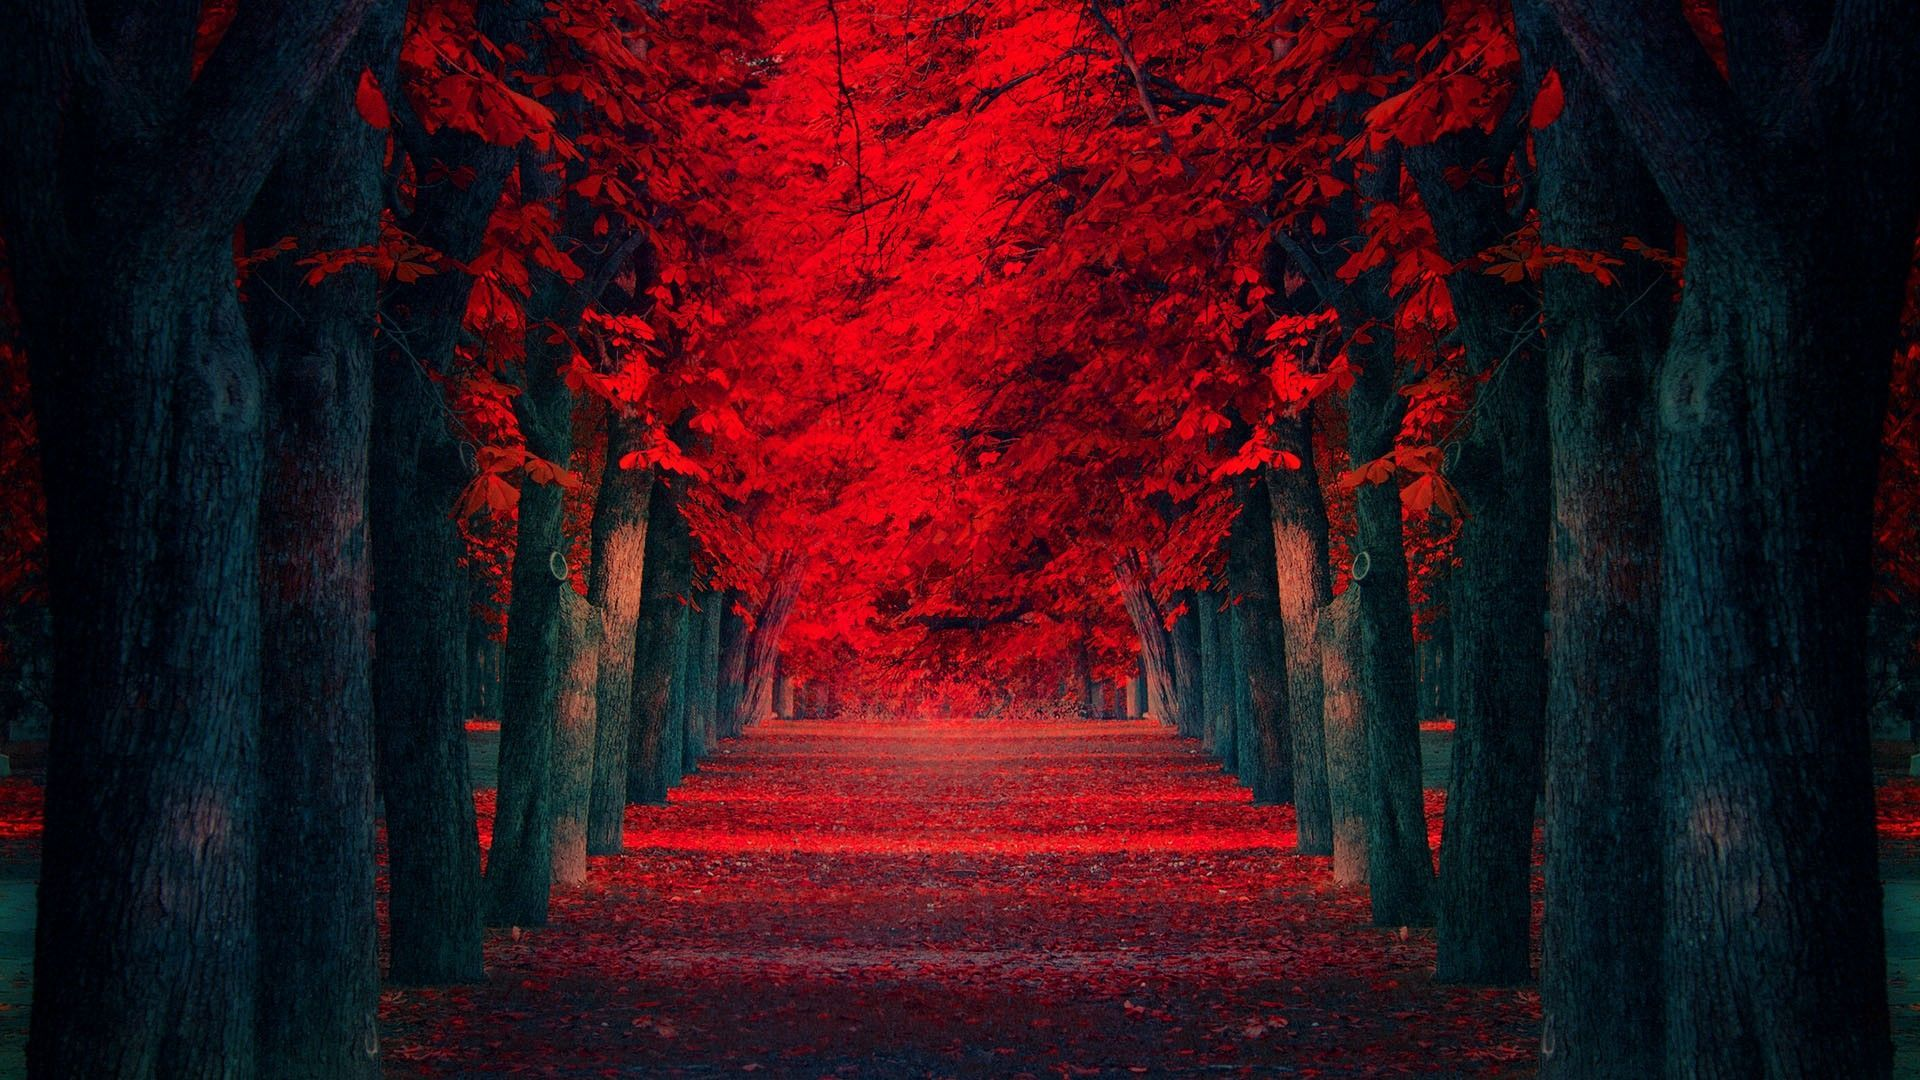 Blood Falling Wallpaper Pin By Andrew On Full Hd Wallpapers Red Maple Tree Red